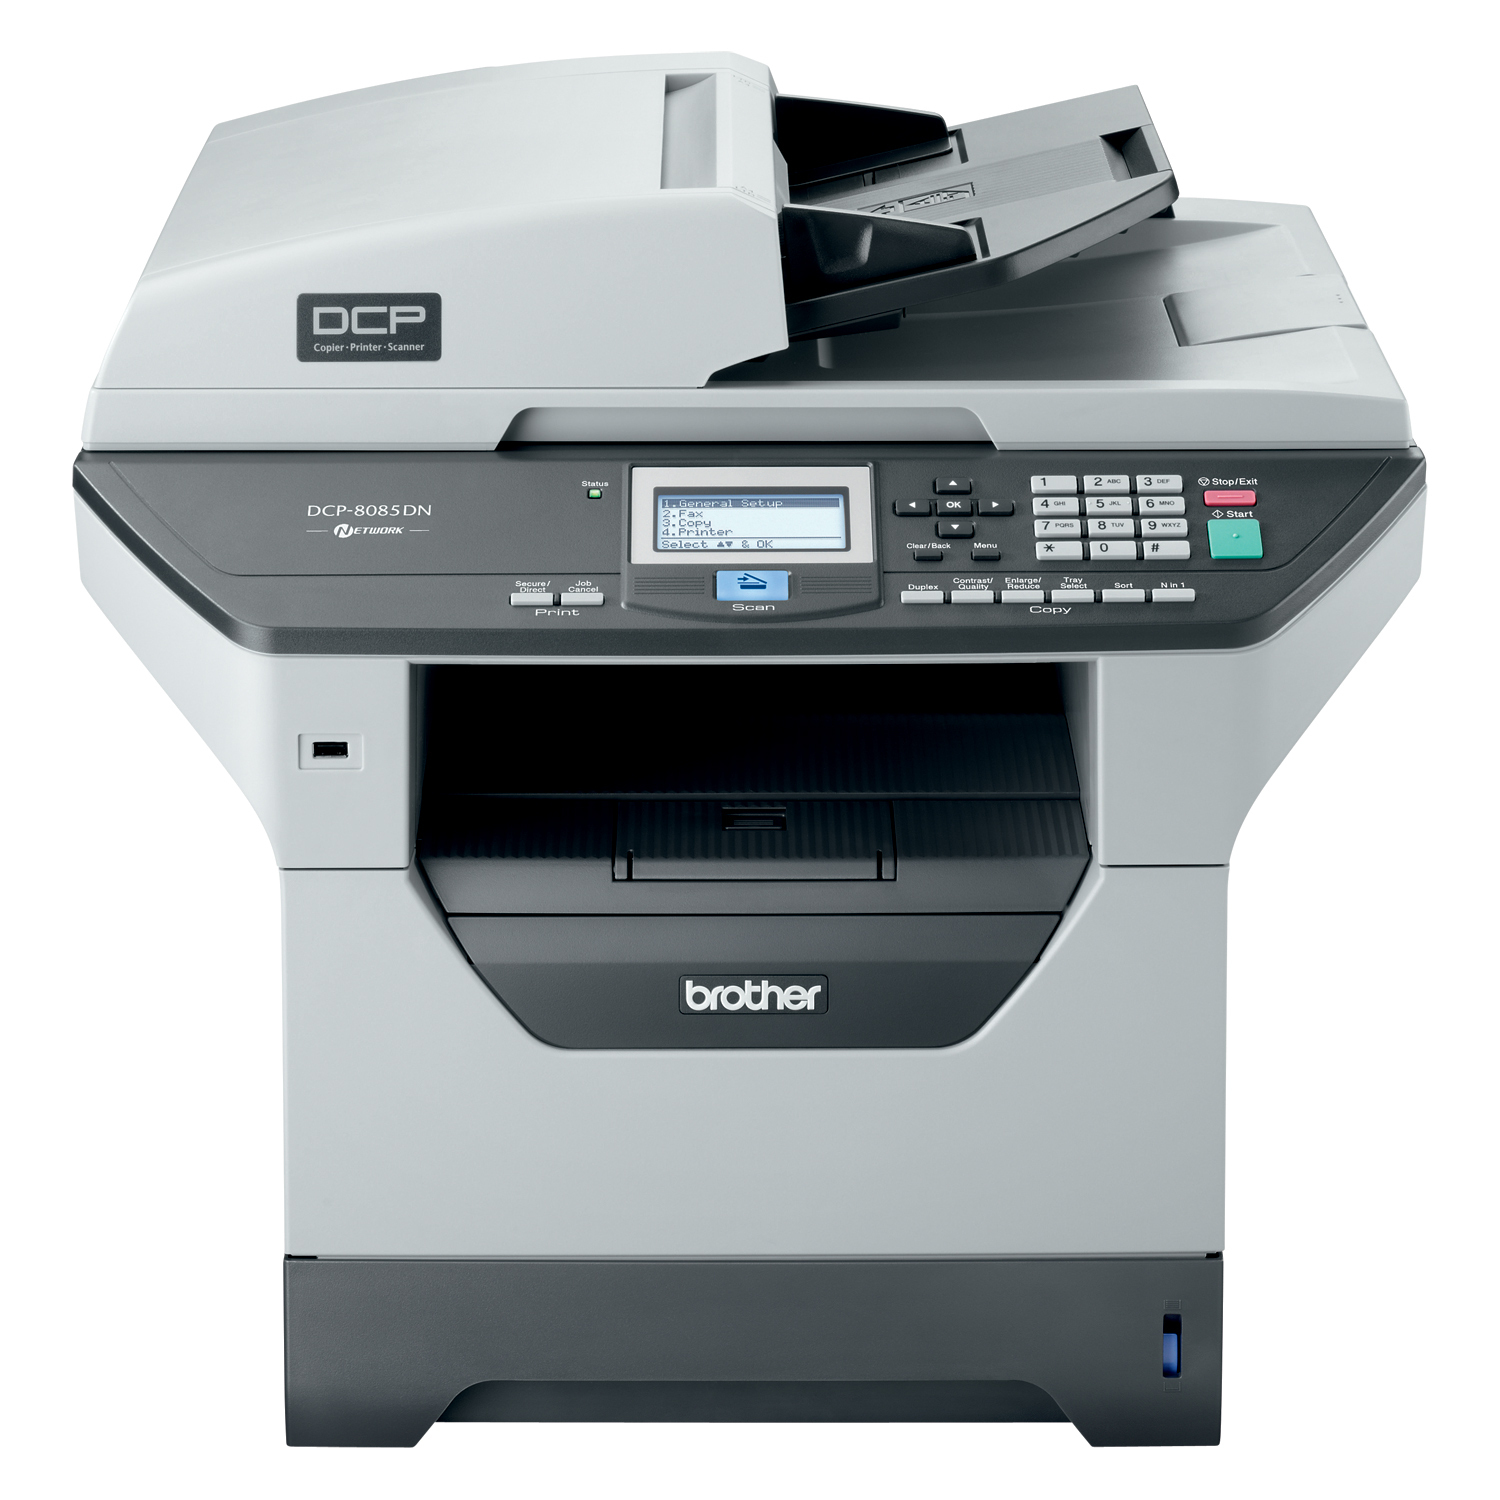 Brother DCP-8085DN MFP (DCP-8085DN) Mono Laser MFP Printer